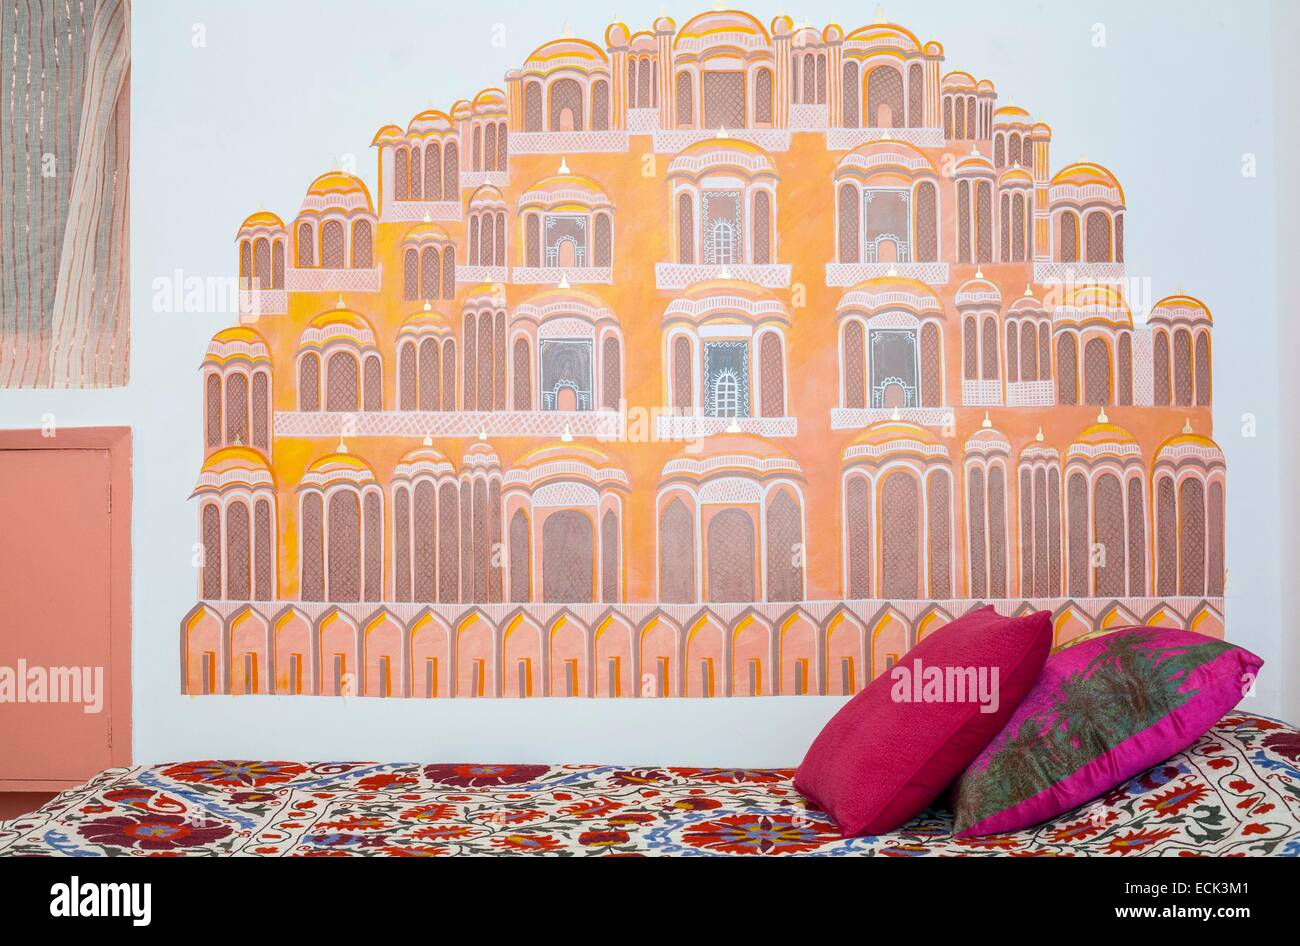 India, New Delhi, Hauz Khas Enclave, Hotel Haveli Amariah - Stock Image